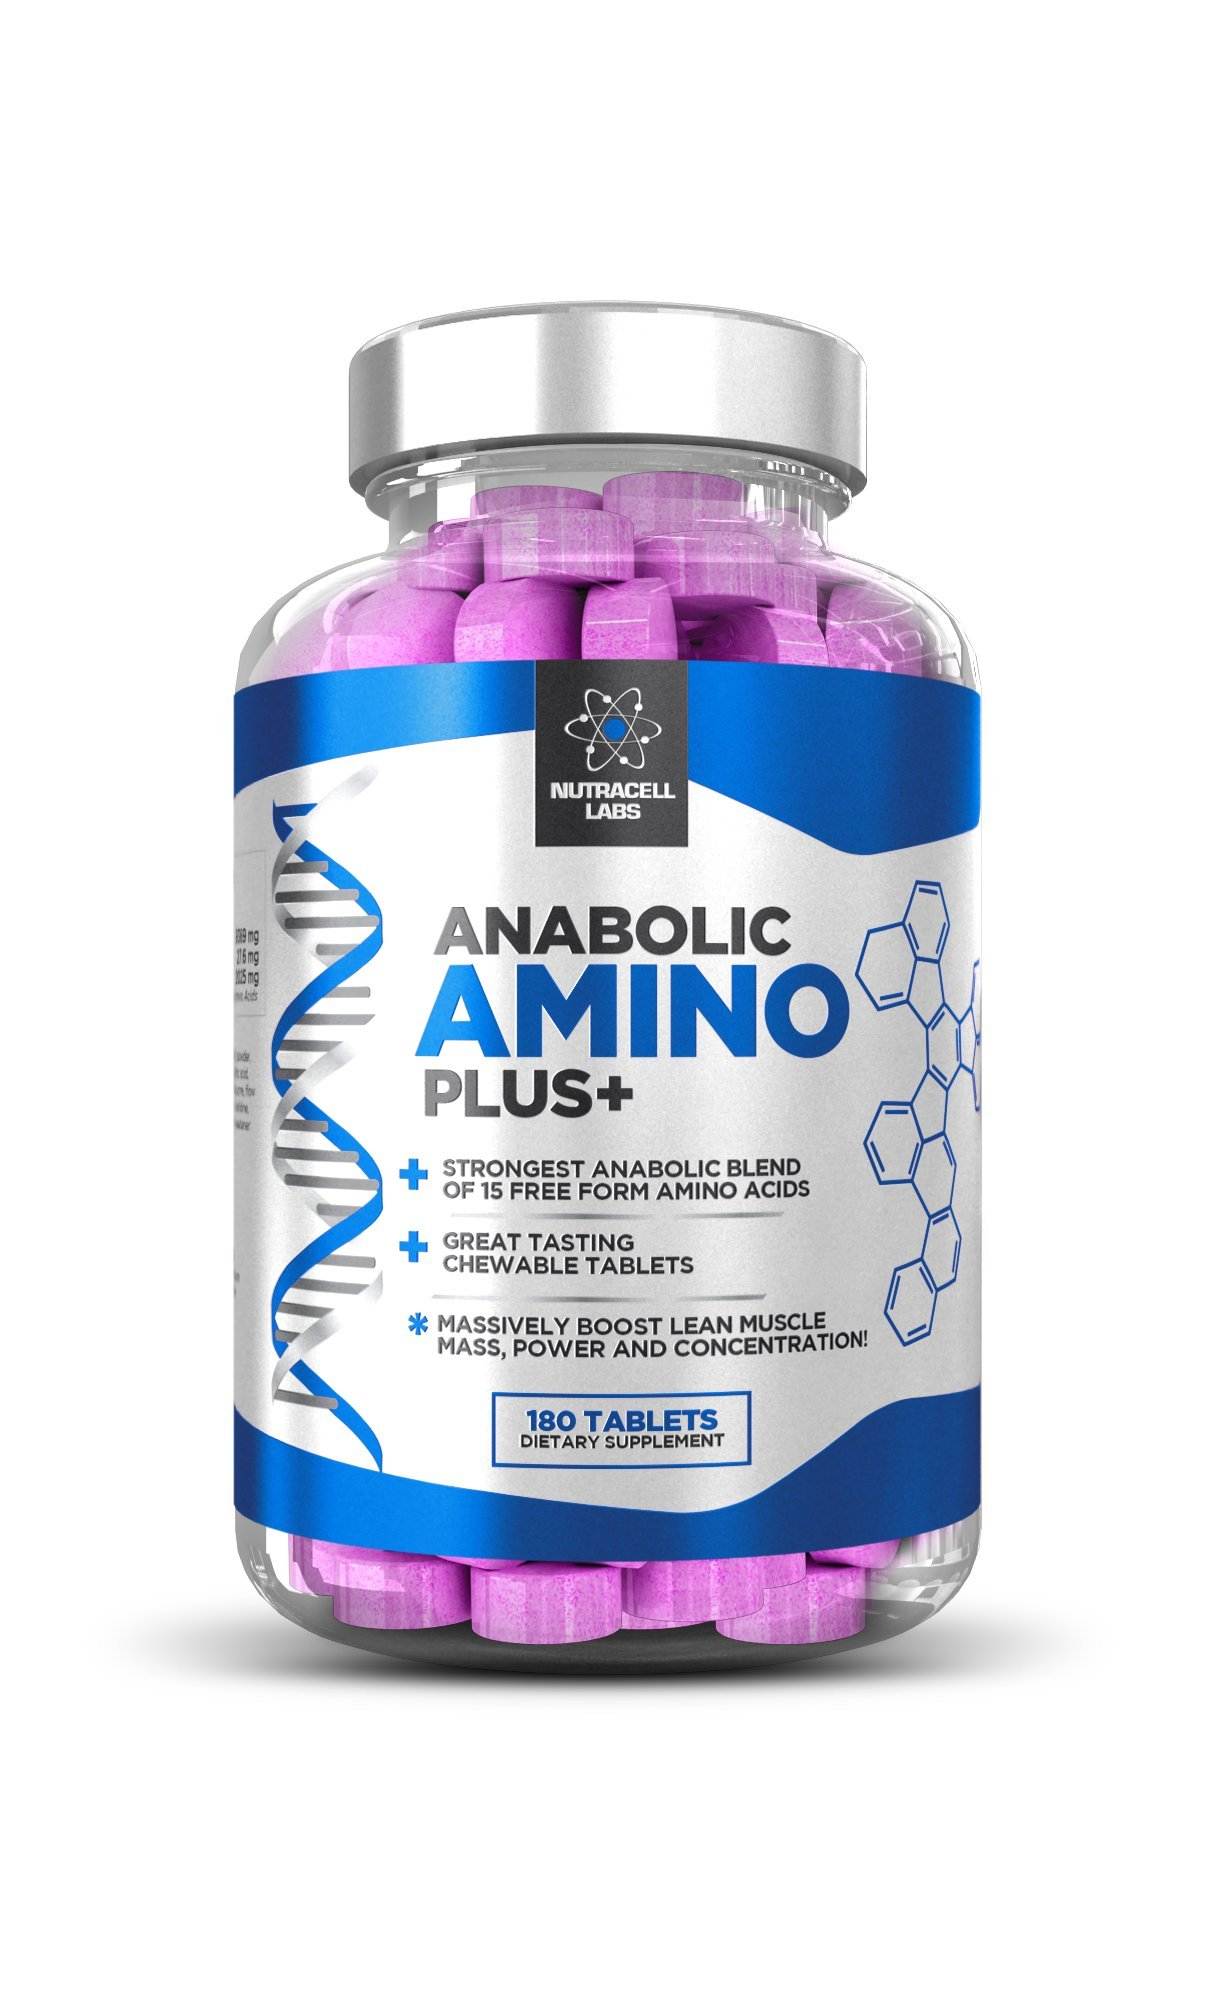 Anabolic Amino Acid Plus+ : Premium 15 Amino Acids Blend BCAA + Vitamin B6 (180 Raspberry Chewable Tablets)